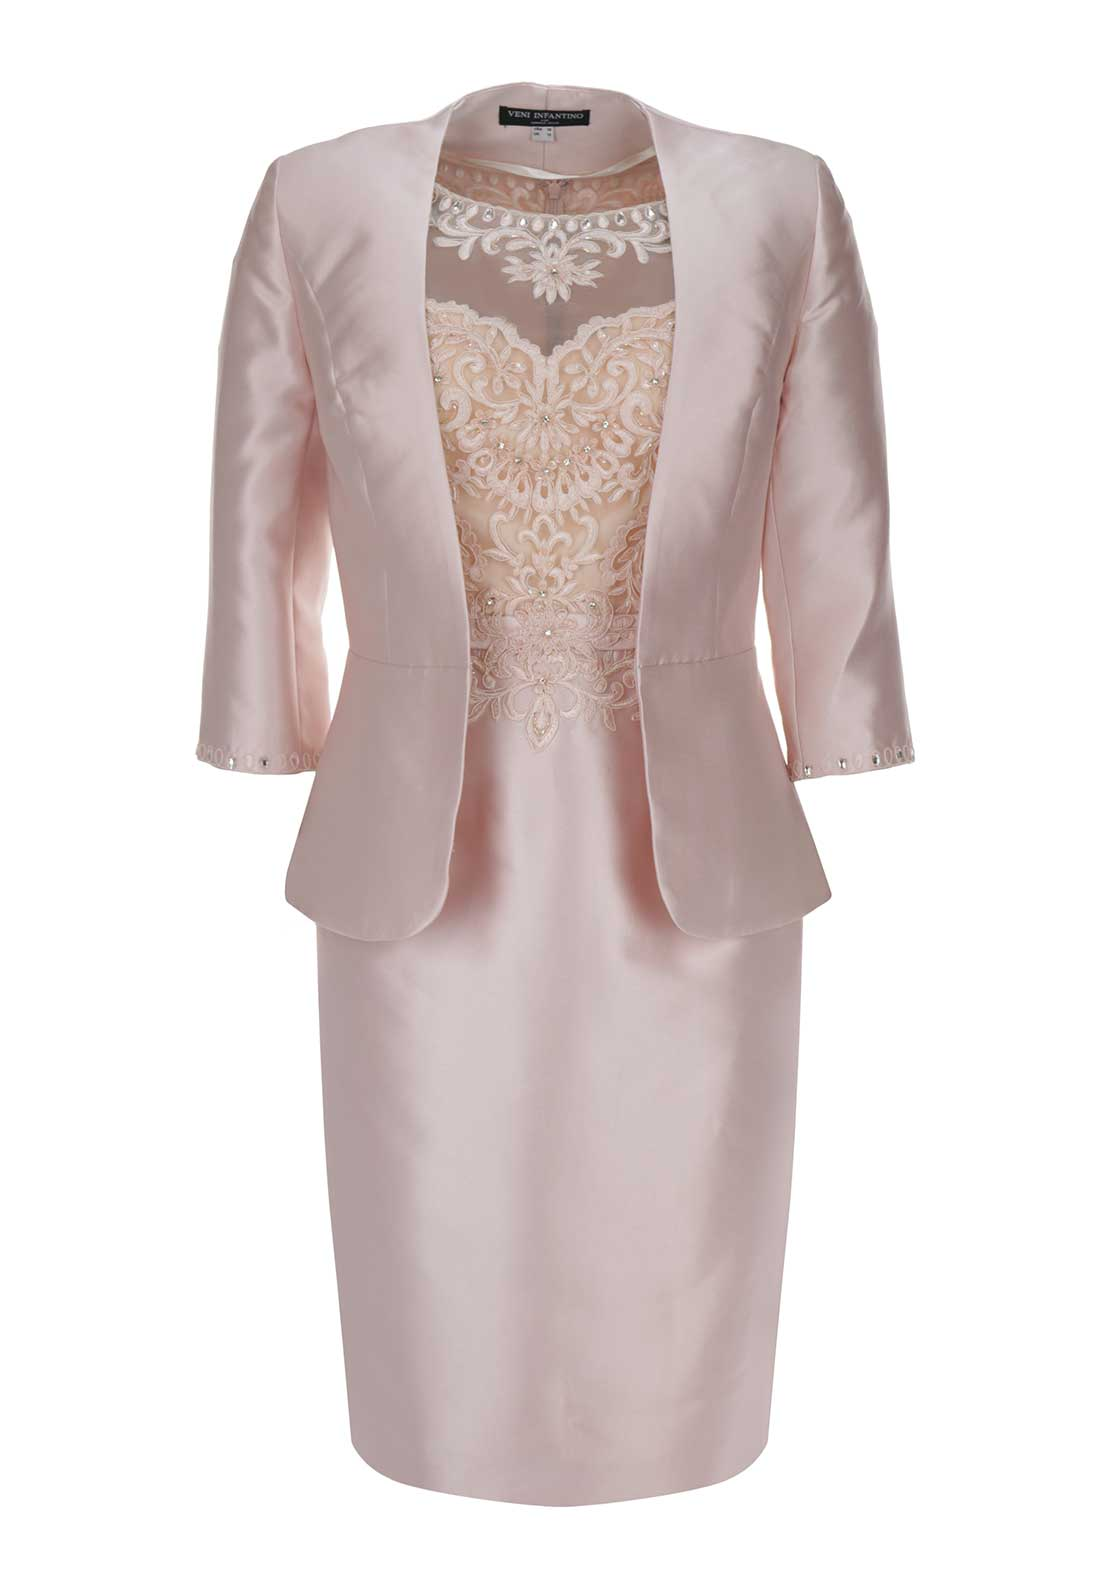 Veni Infantino for Ronald Joyce Embellished Overlay Dress and Jacket Outfit, Blossom Pink